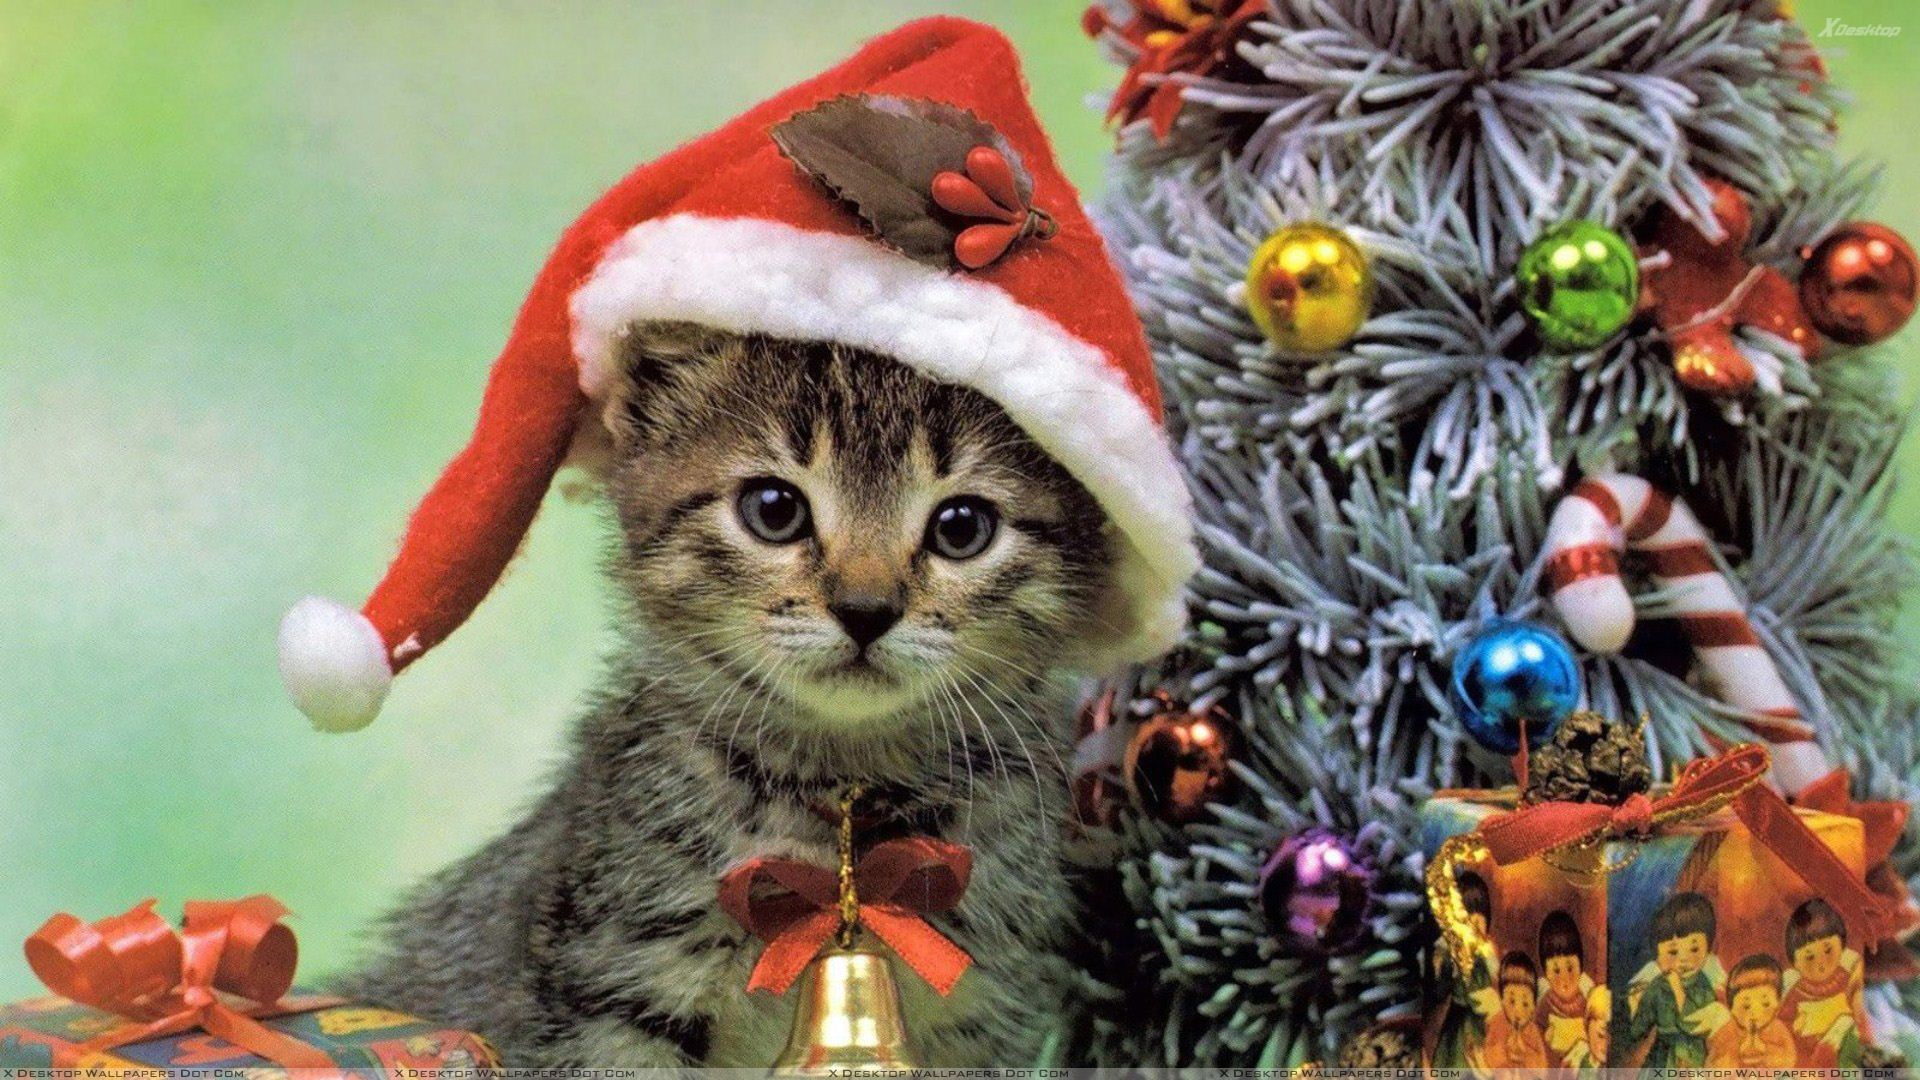 Christmas Eve Images.Little Cat On Christmas Eve Wallpaper